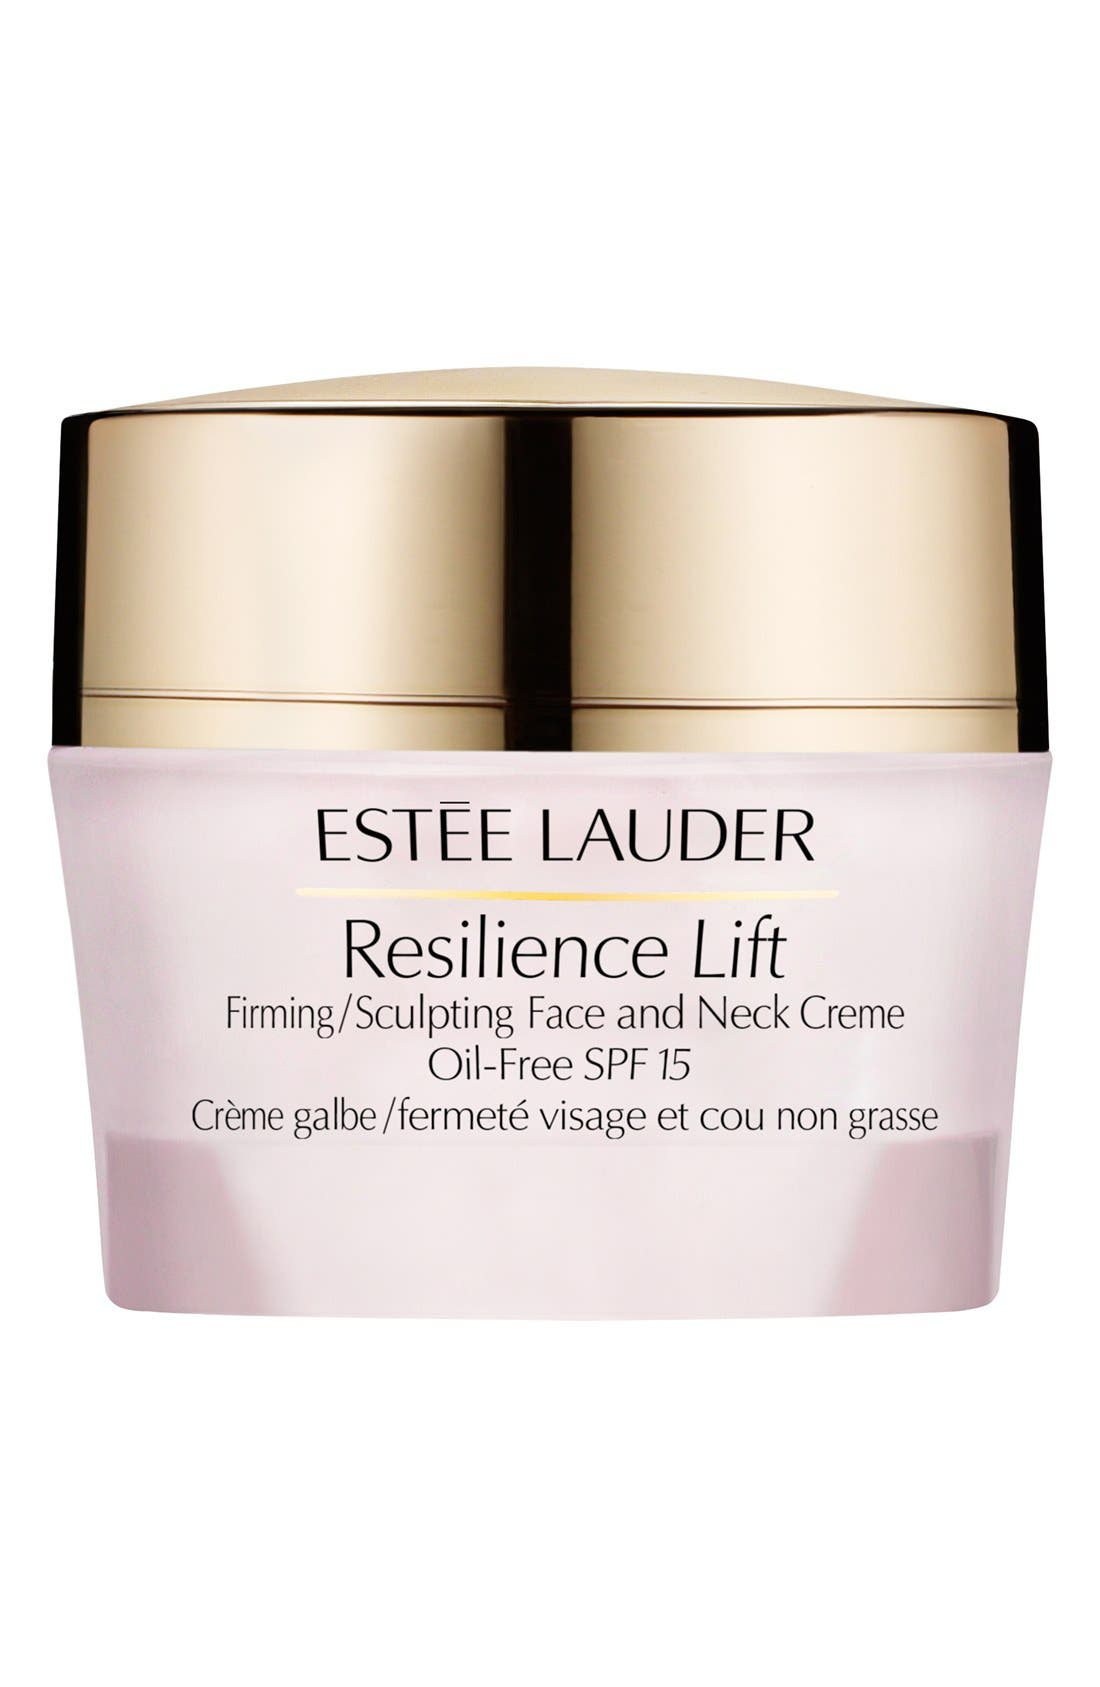 Resilience Lift Firming/Sculpting Face & Neck Creme Oil-Free SPF 15,                             Main thumbnail 1, color,                             000